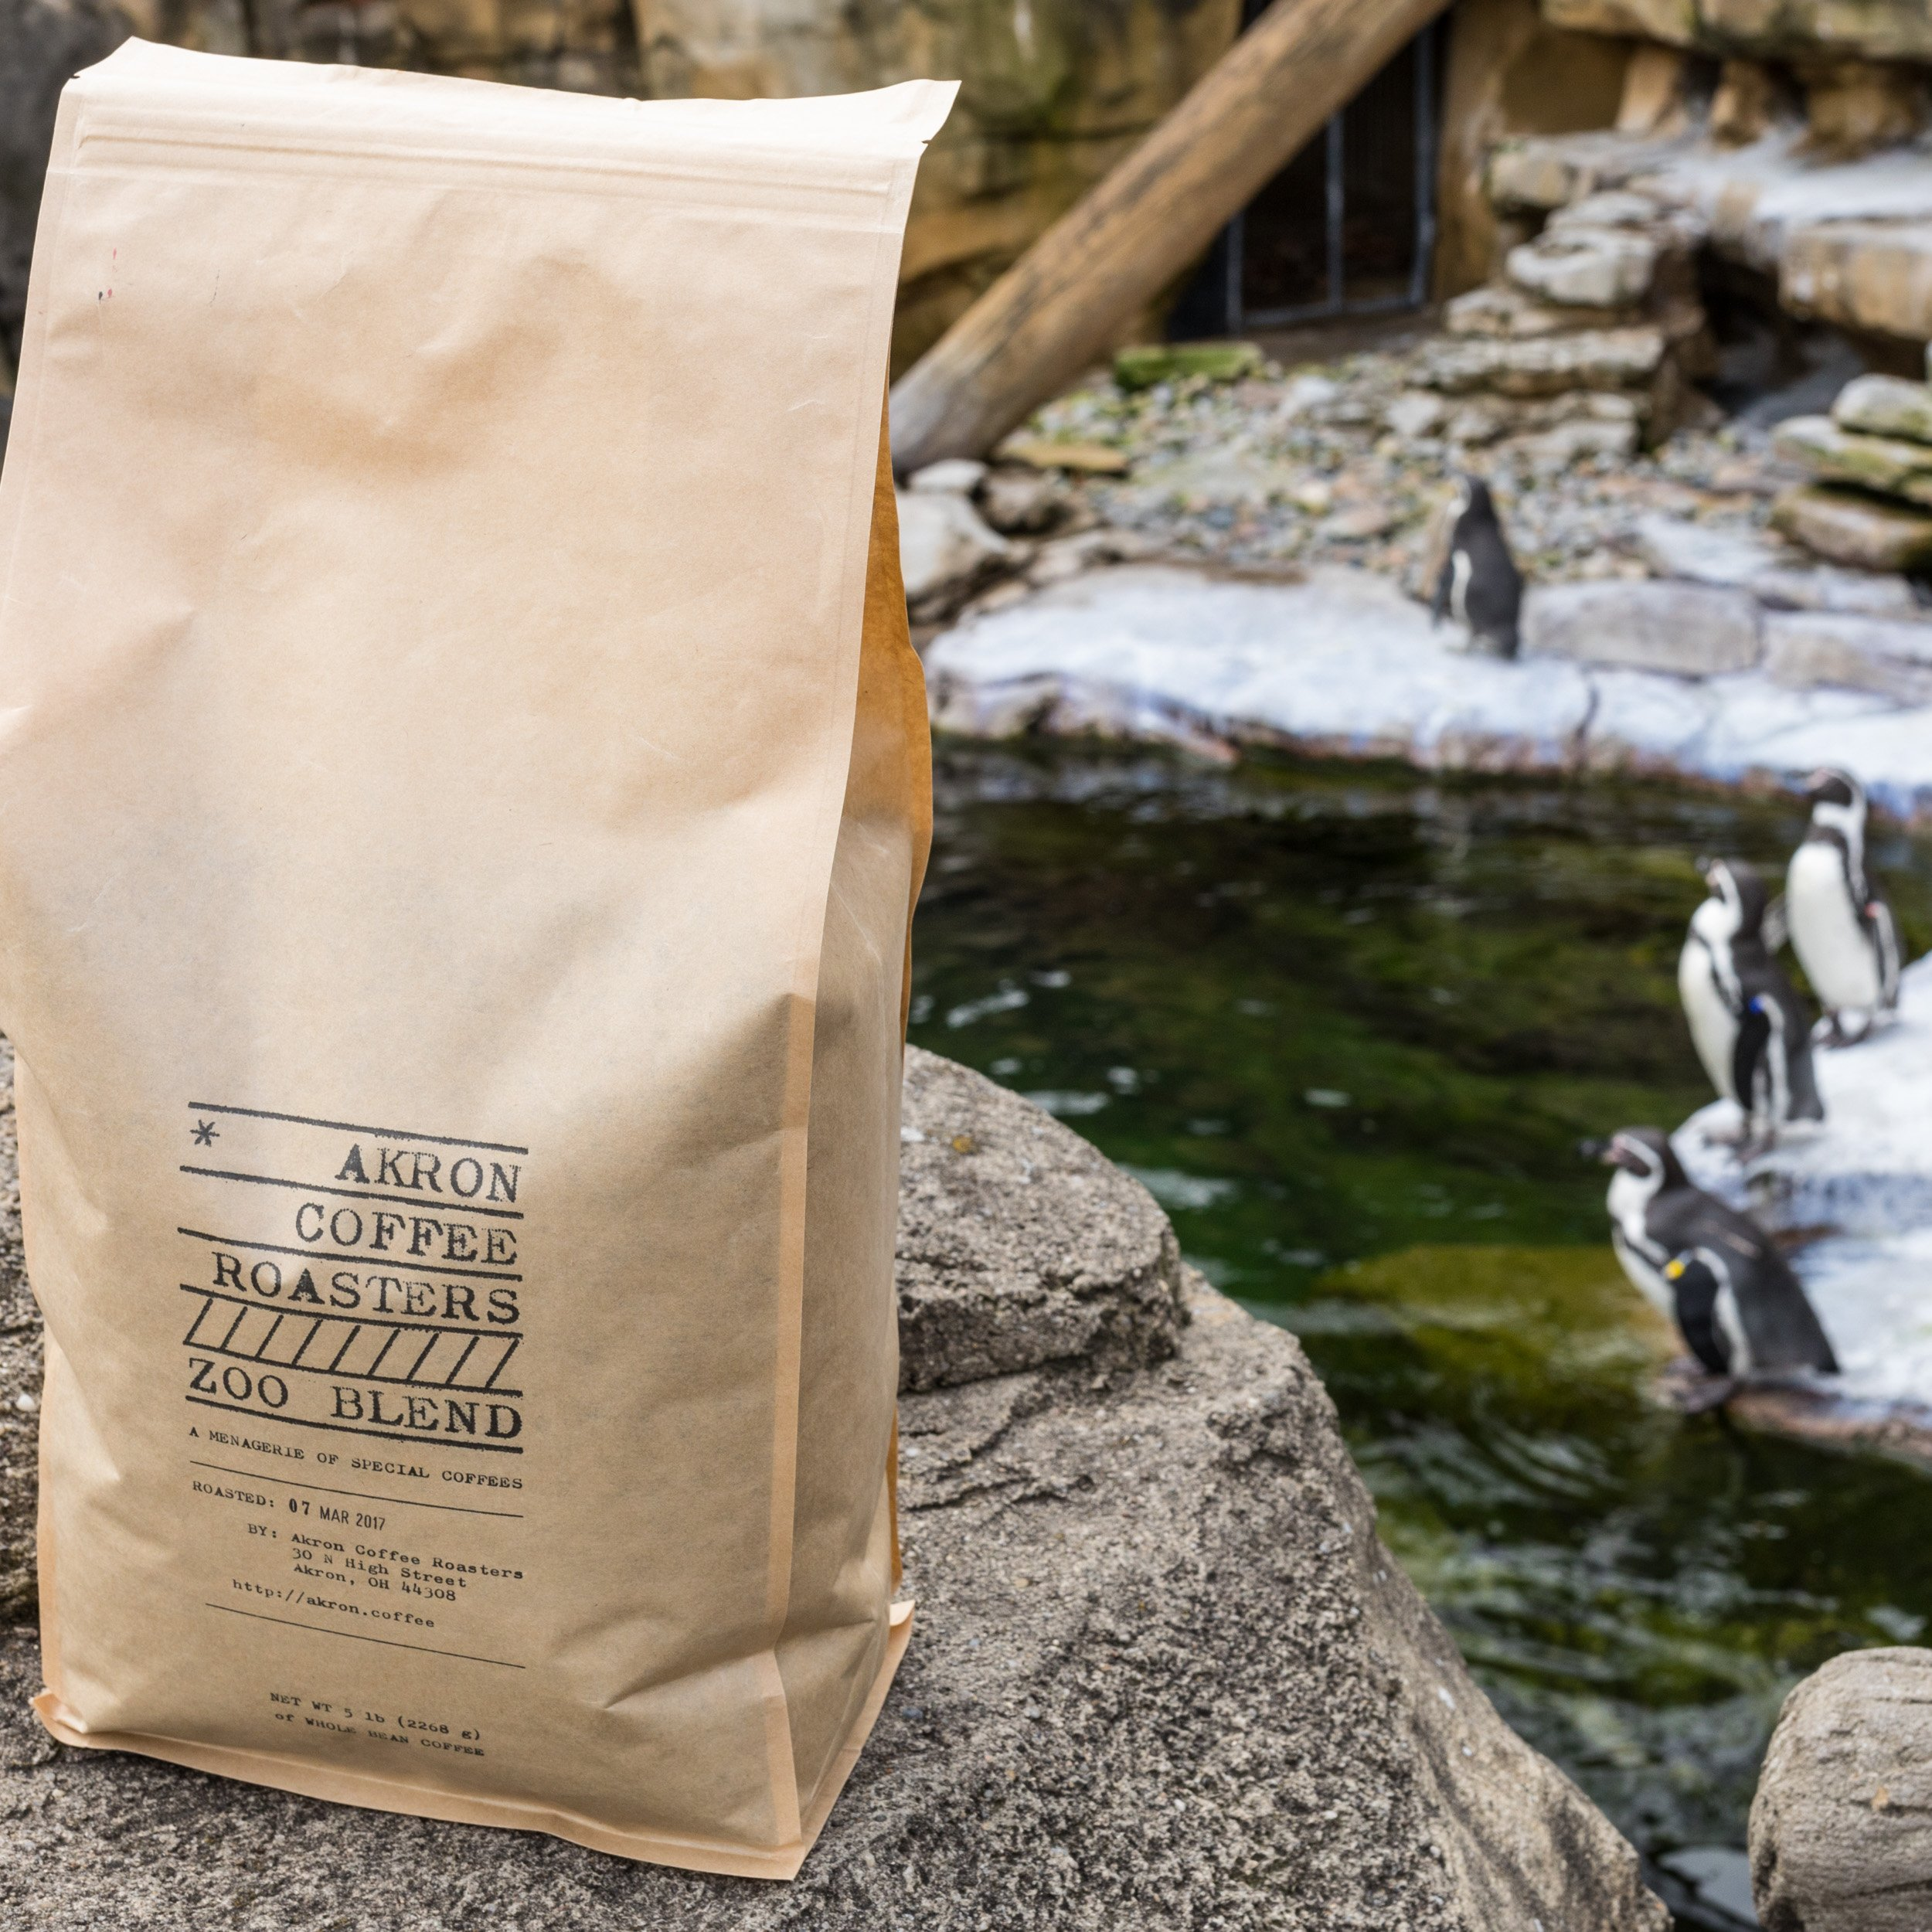 Akron Coffee Roasters coffee packaging in stand up pouch